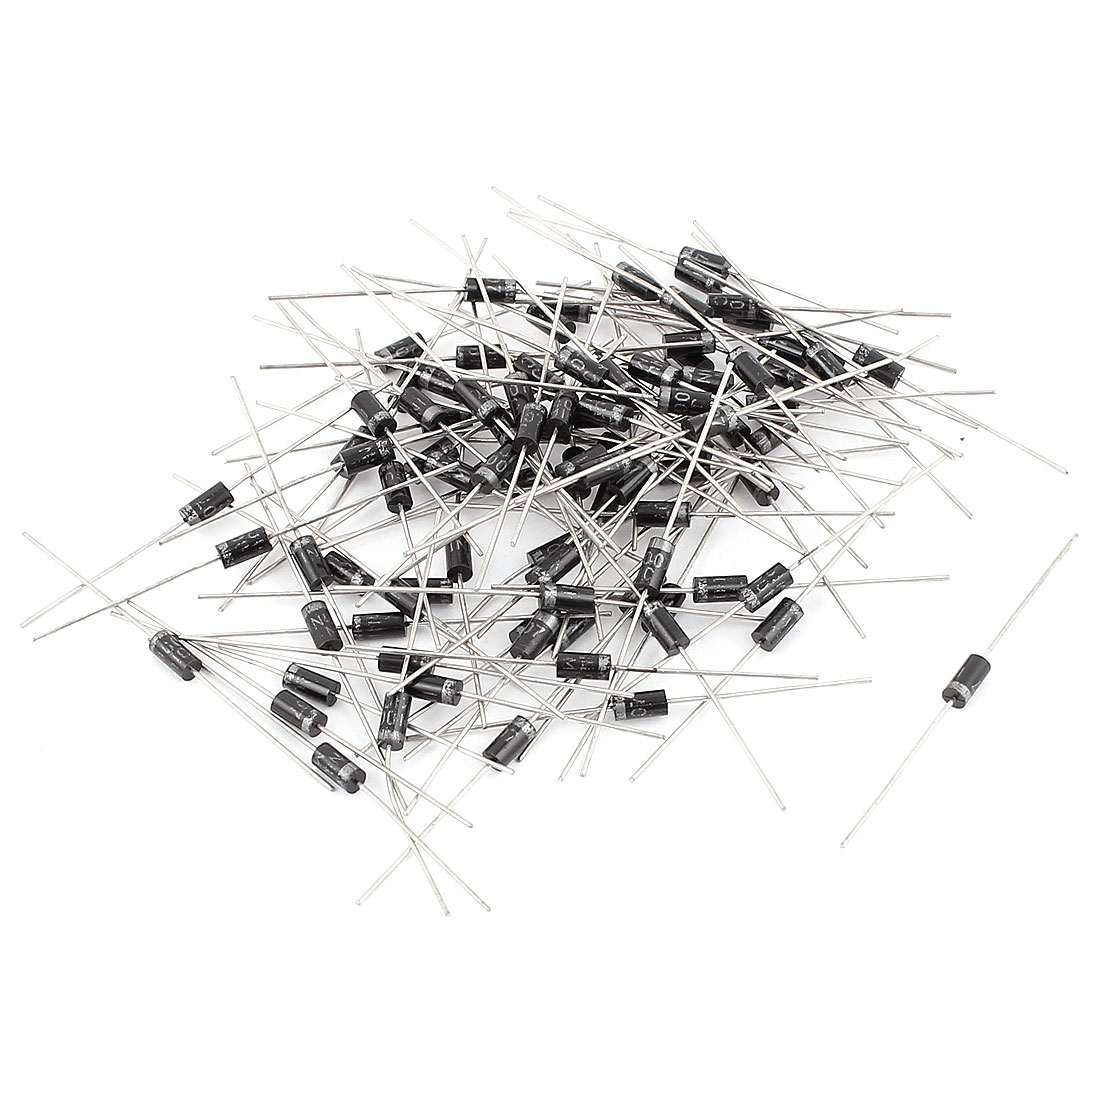 1A 1000V Cylindrical Axial Leaded IN4007 Rectifier Schottky Diodes 100 Pcs